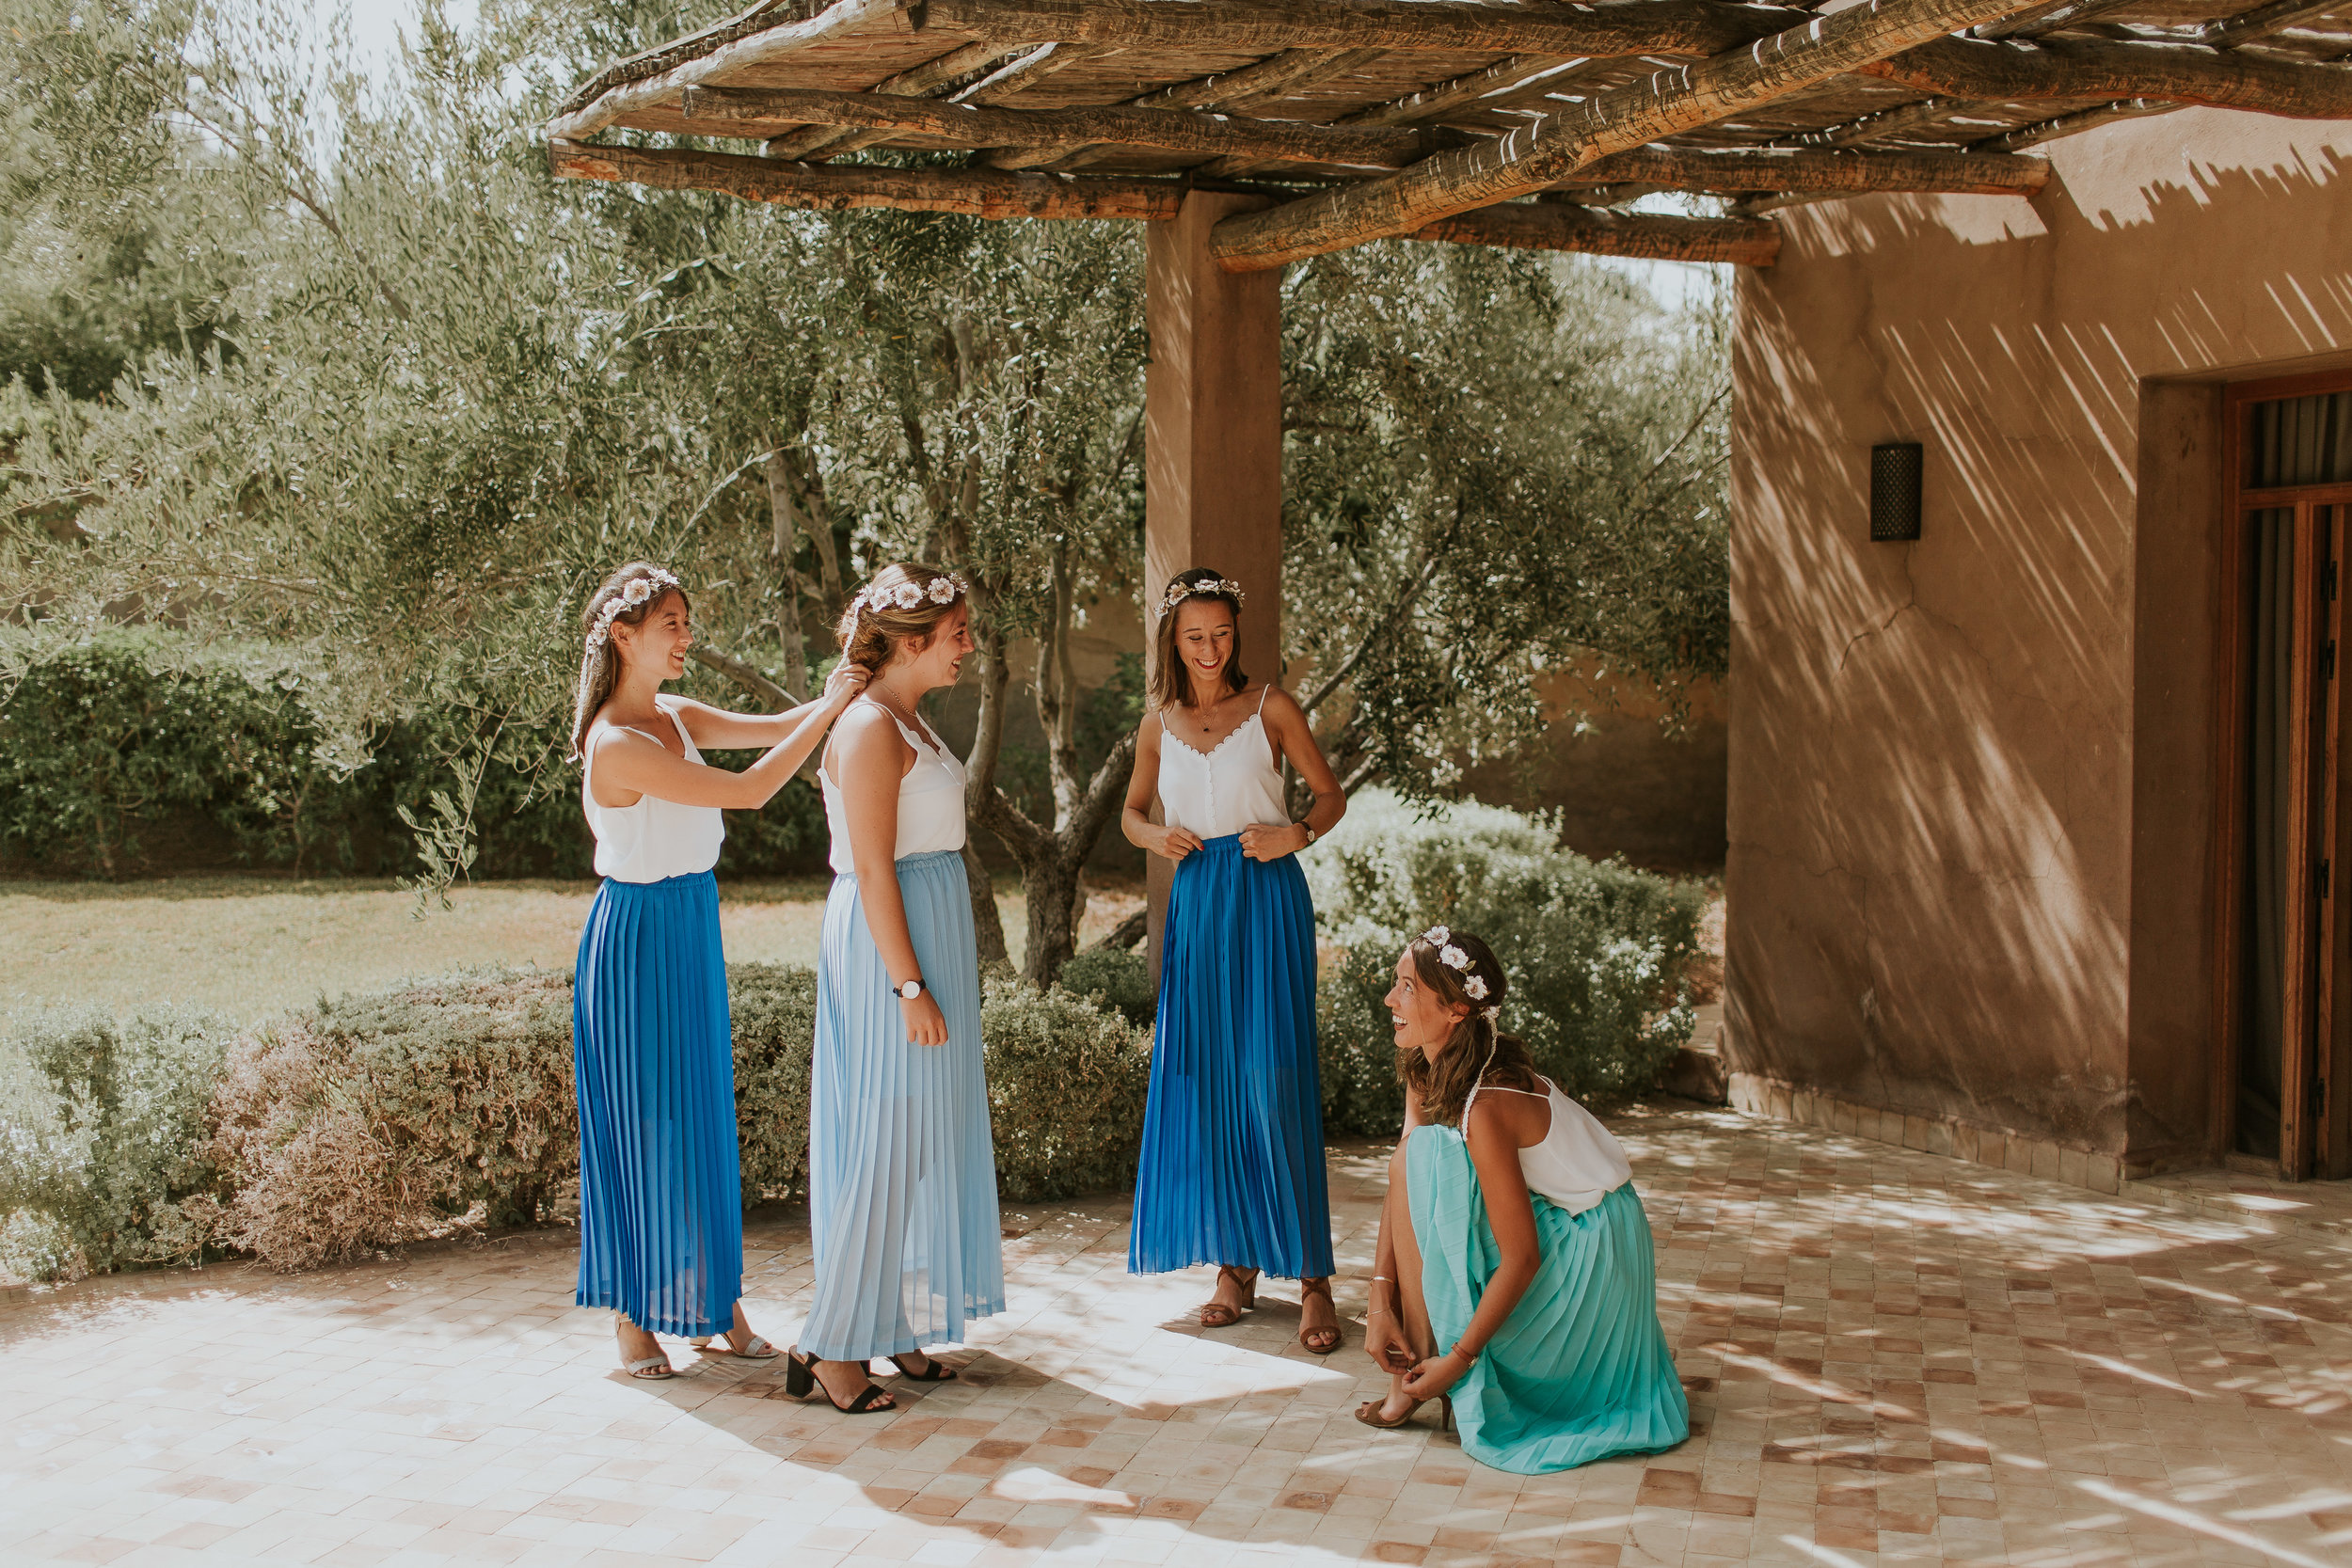 morganedimitri_davidmaire_marrakech_destinationwedding-96.jpg